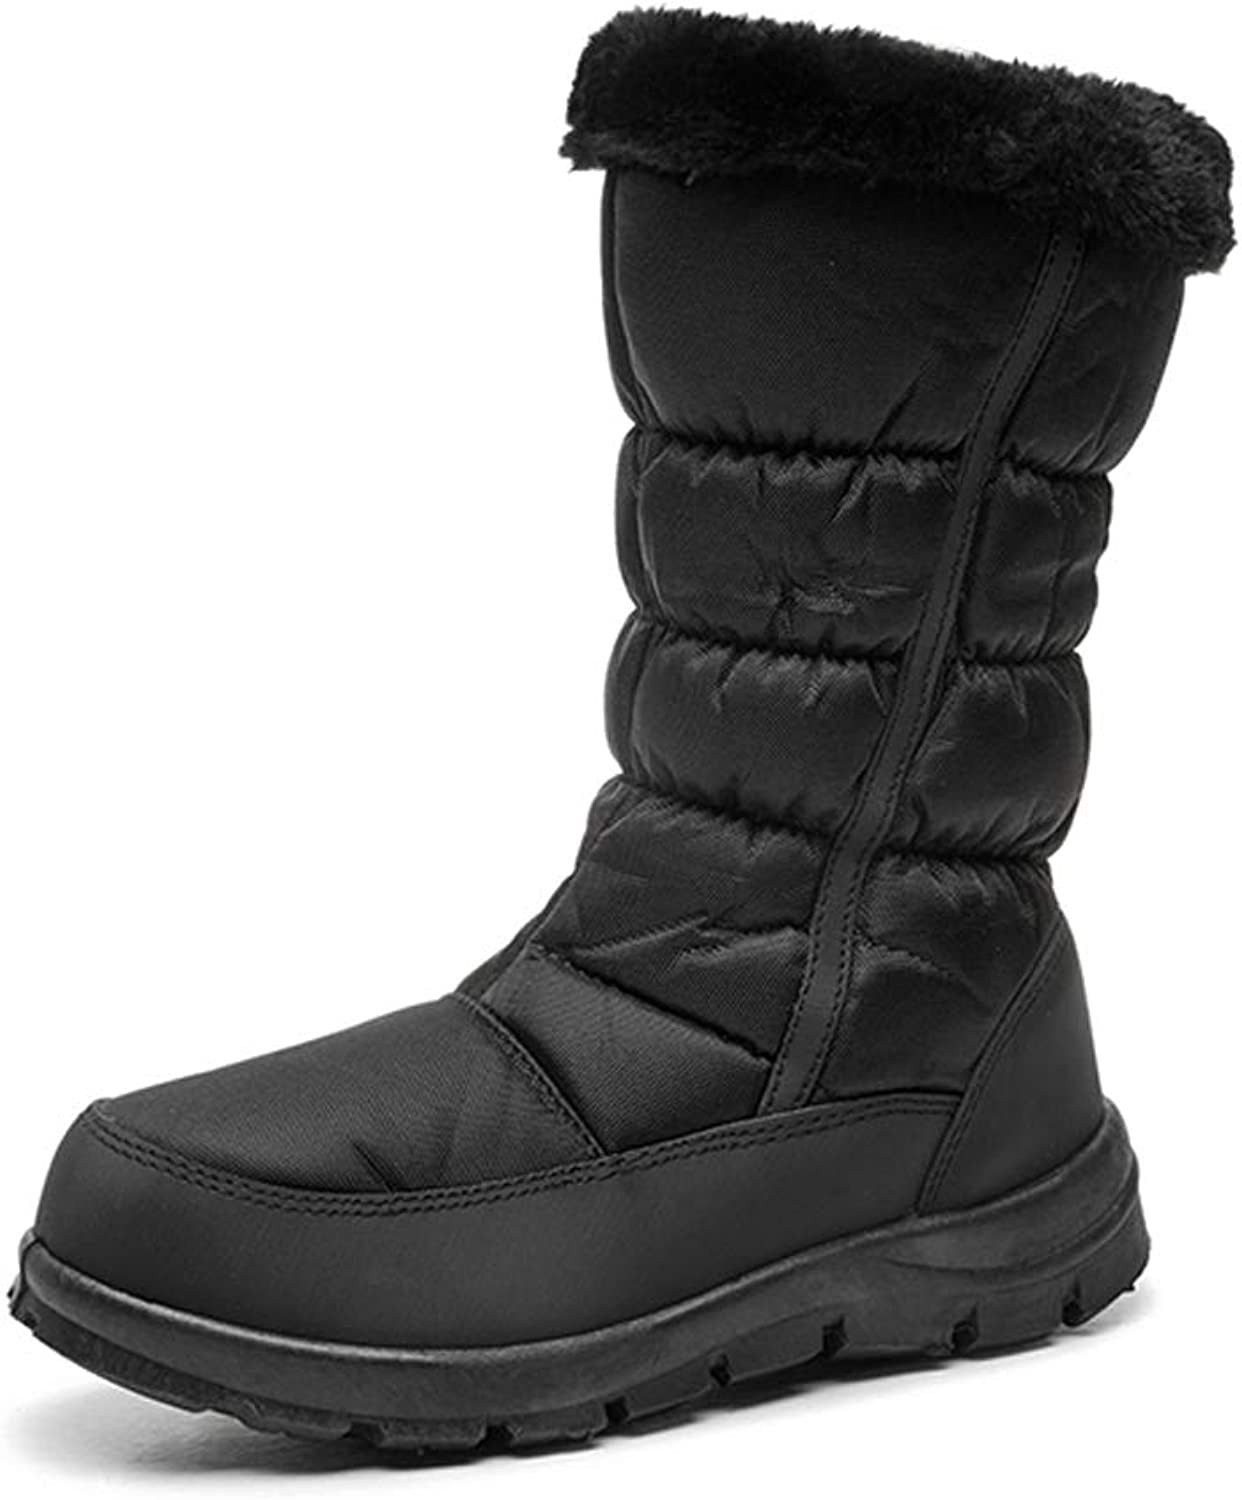 KINDOYO Womans Outdoor Snow Boots - Bootie Warm Lined Sneakers Slip On shoes